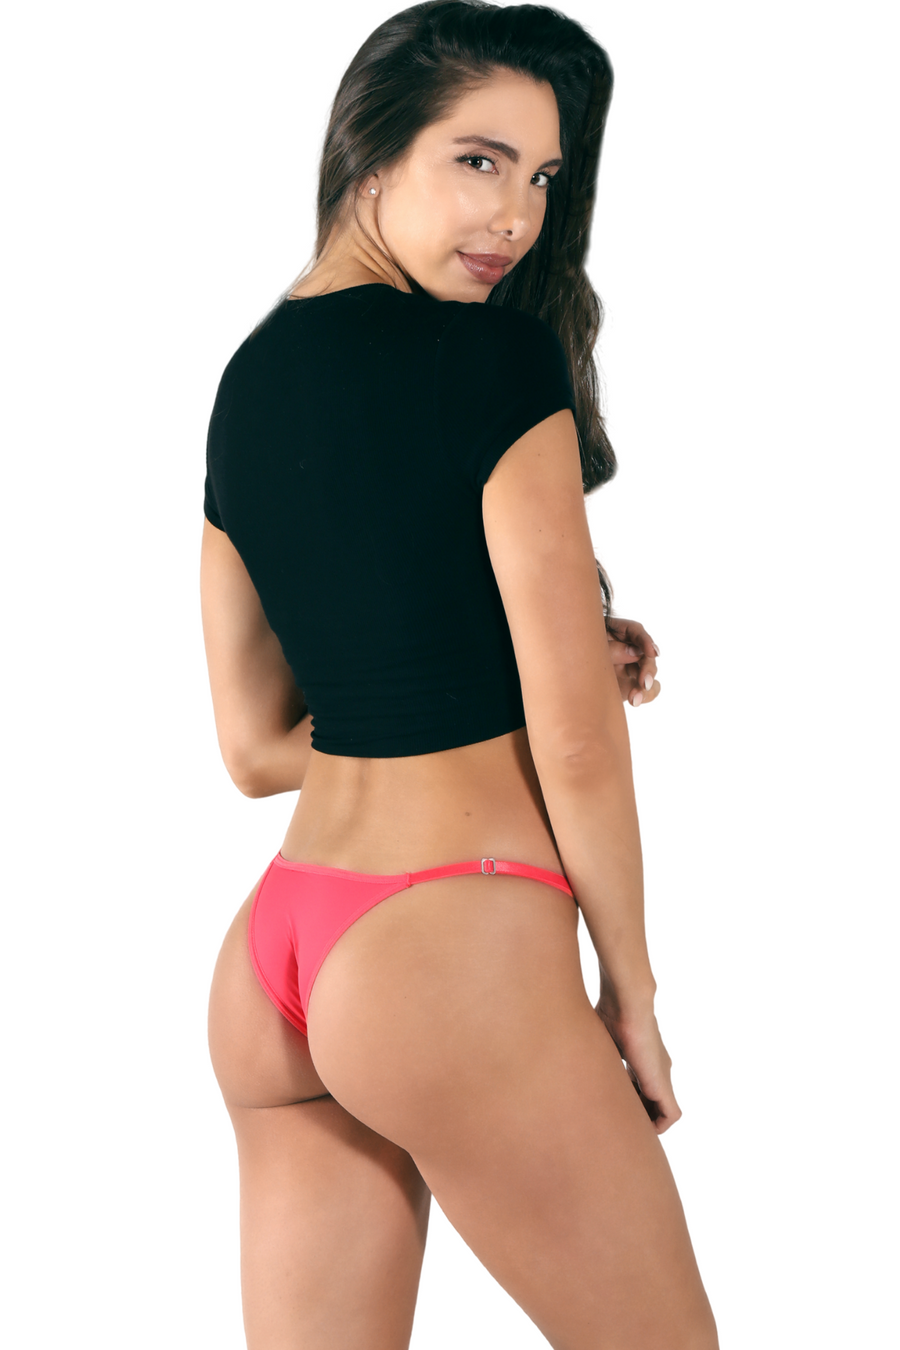 red Brazilian string bikini underwear. Women's cheeky panty